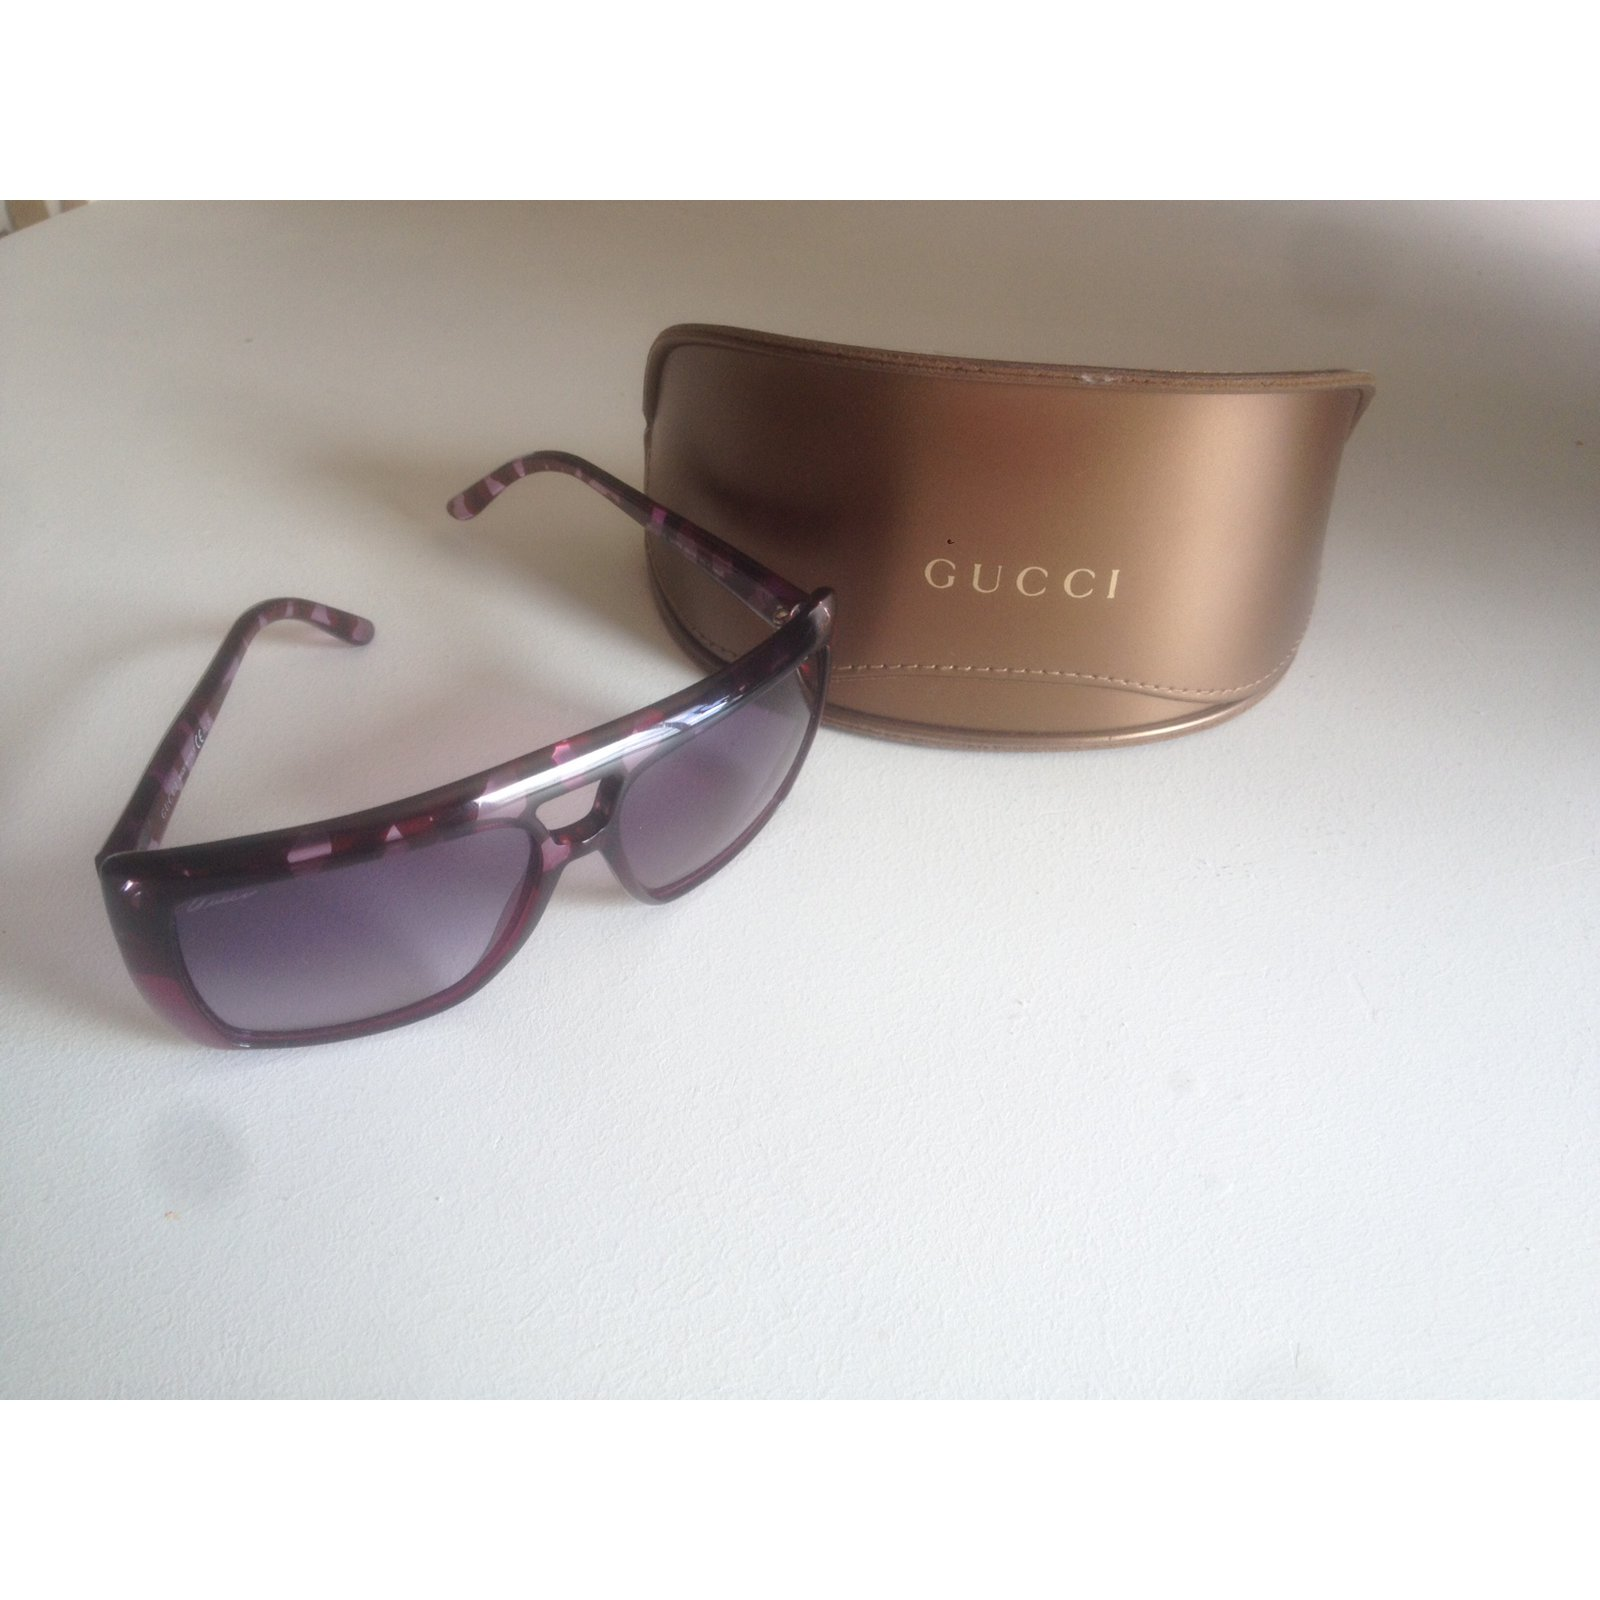 72b5044da36 Gucci Sunglasses Sunglasses Plastic Other ref.11212 - Joli Closet